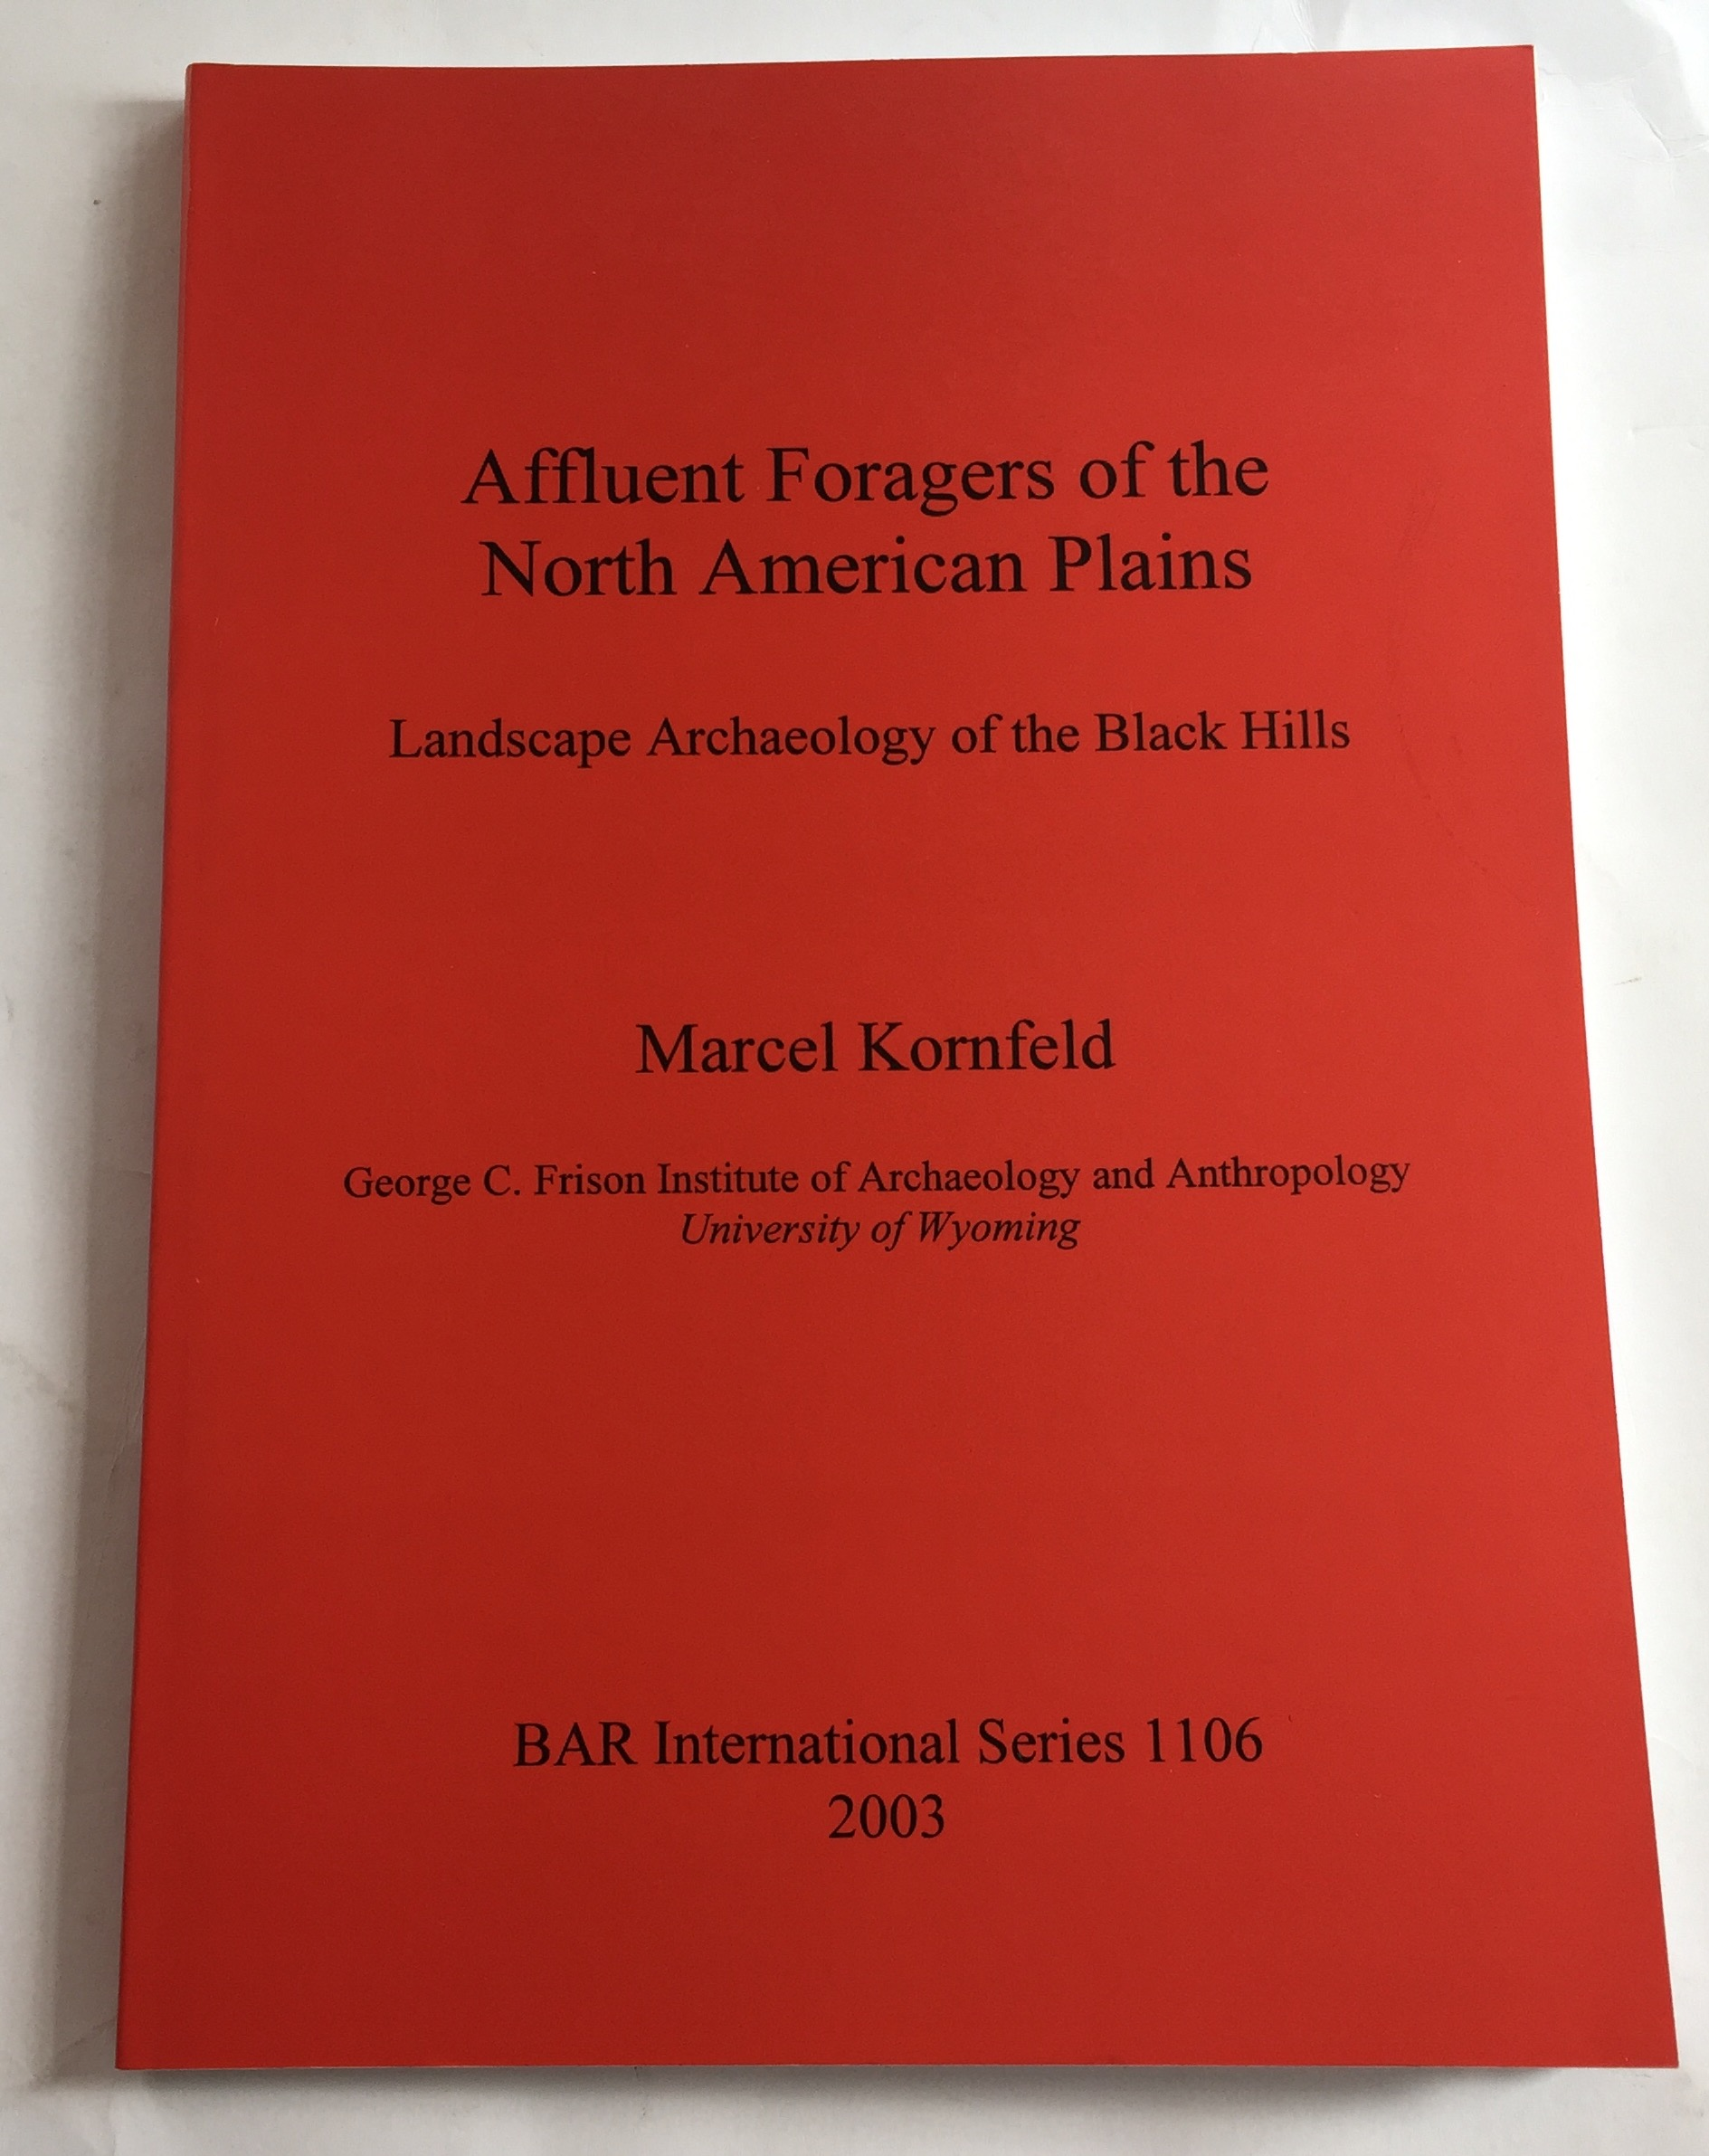 Affluent Foragers of the North American Plains : Landscape Archaeology of the Black Hills (BAR International Series 1106), Kornfeld, Marcel ;